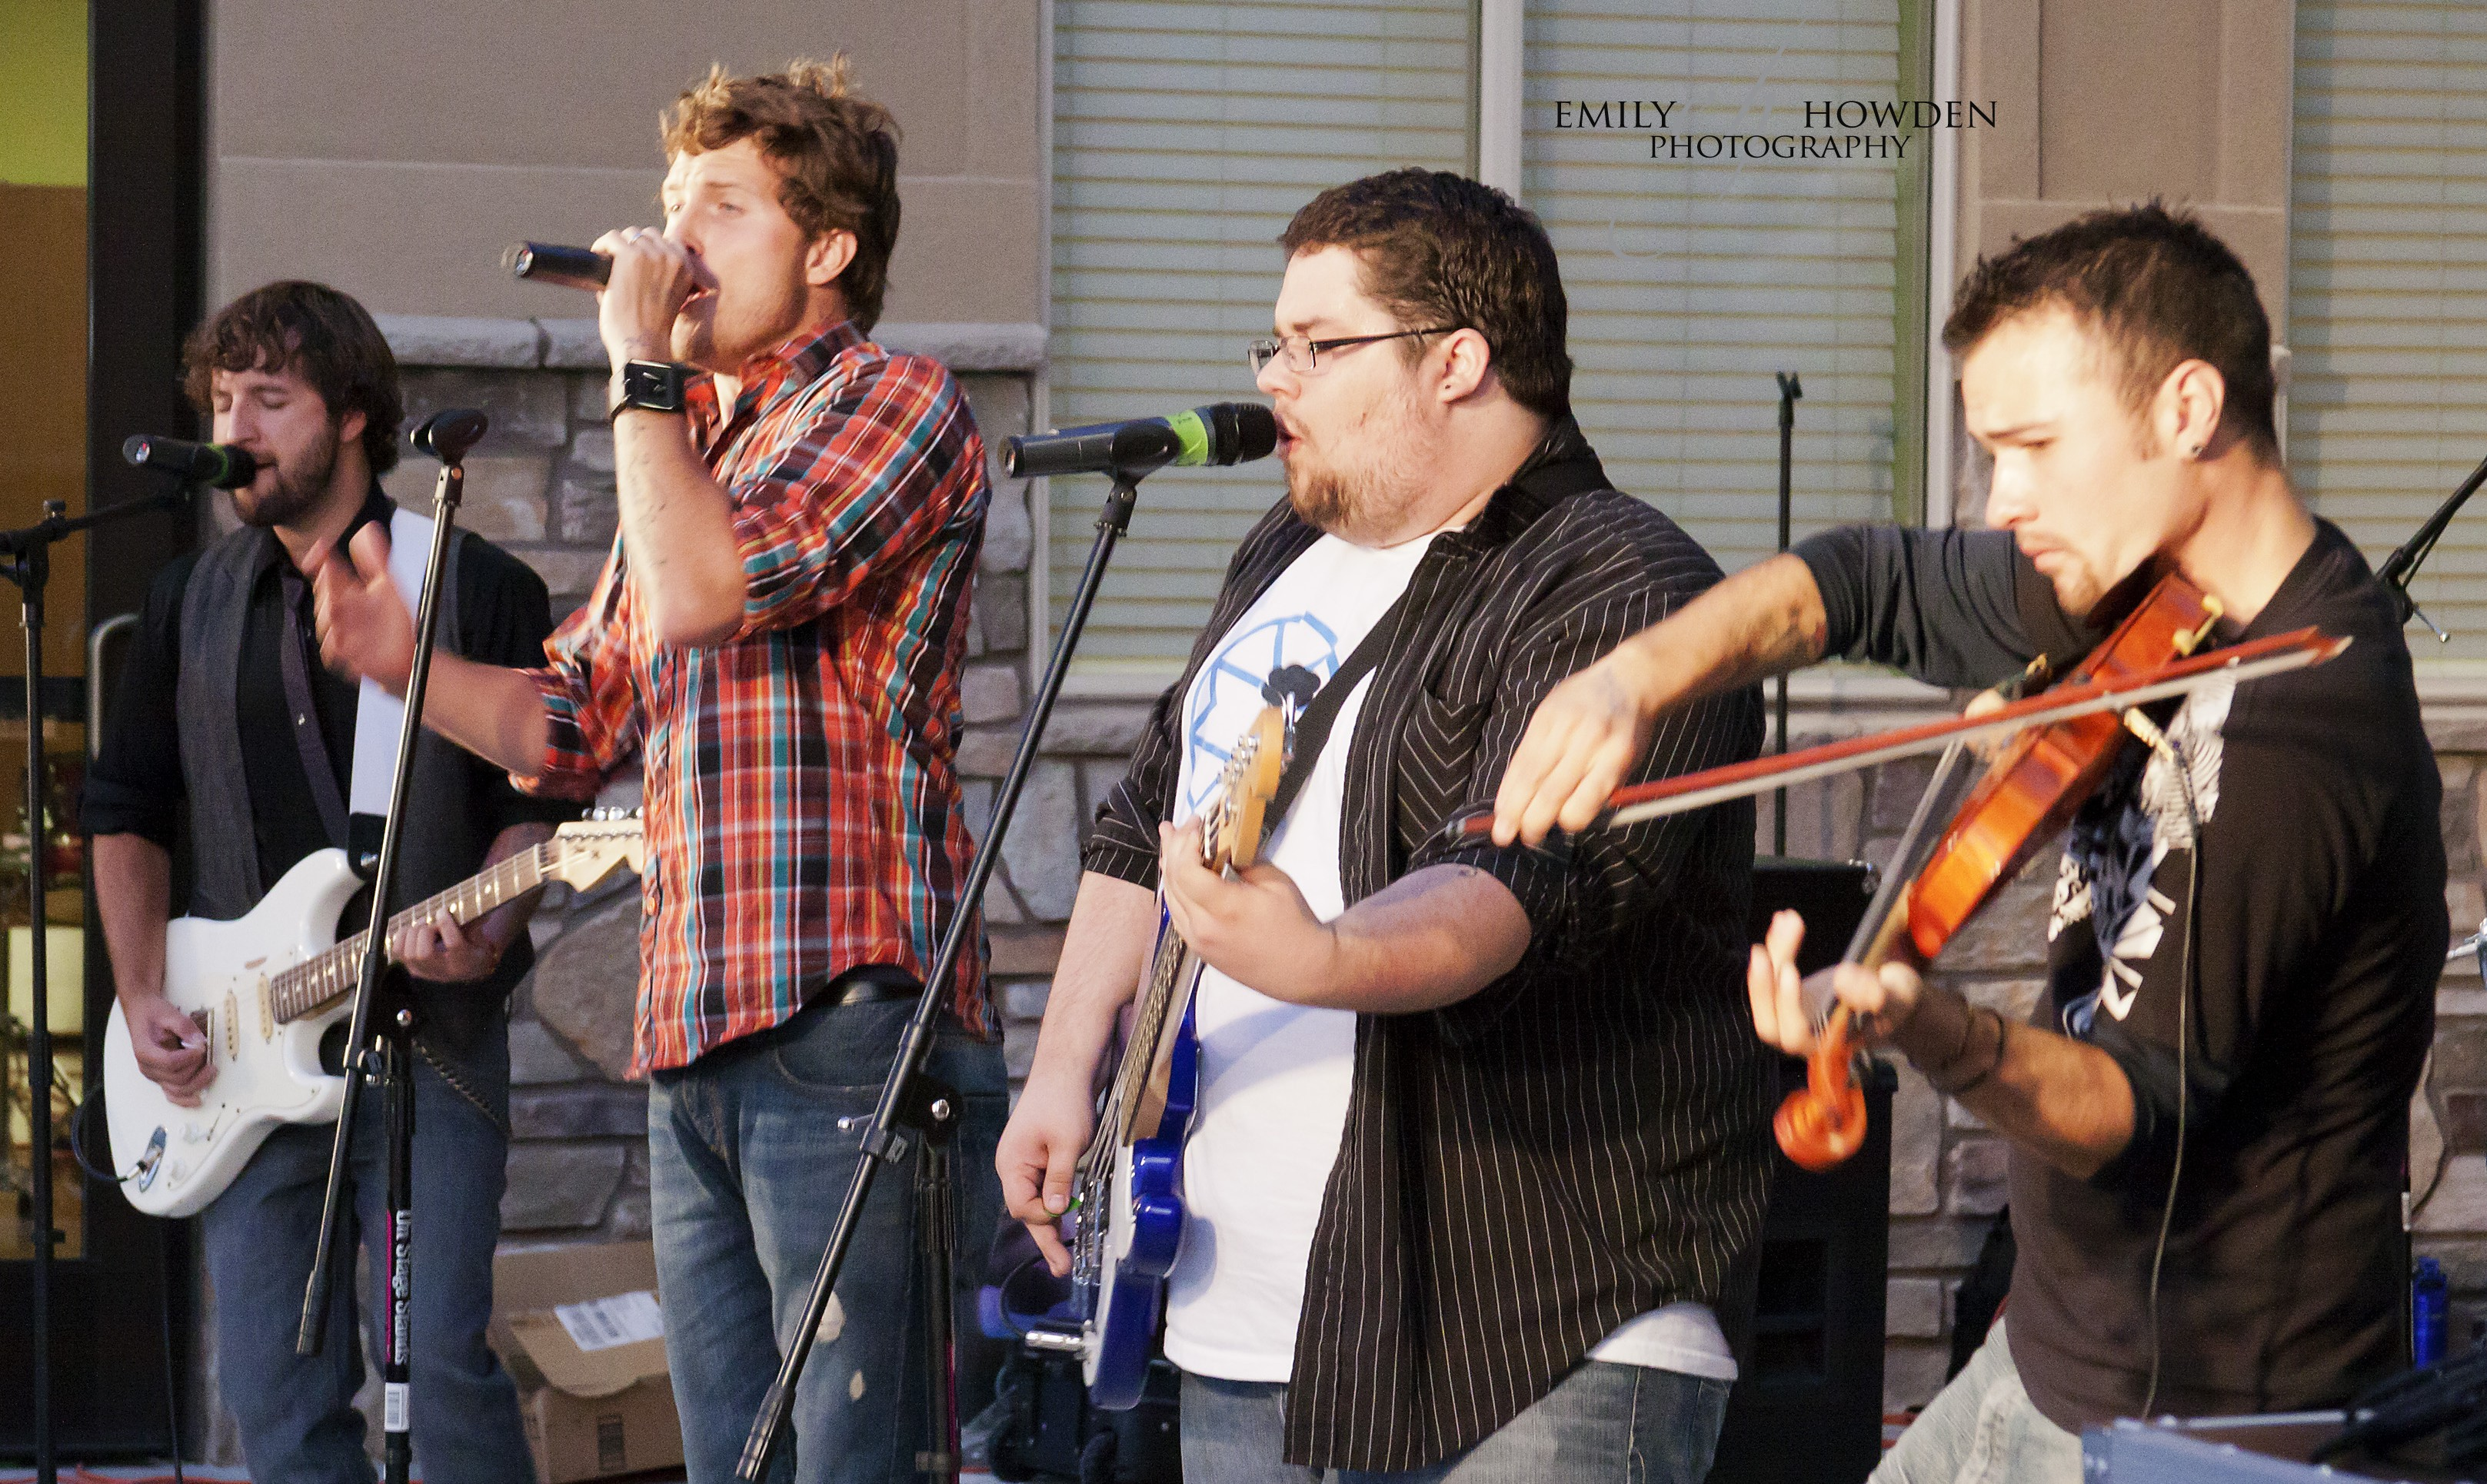 An eclectic mix will compete in the Food & Care Coalition's second annual Battle of the Bands benefit concert.